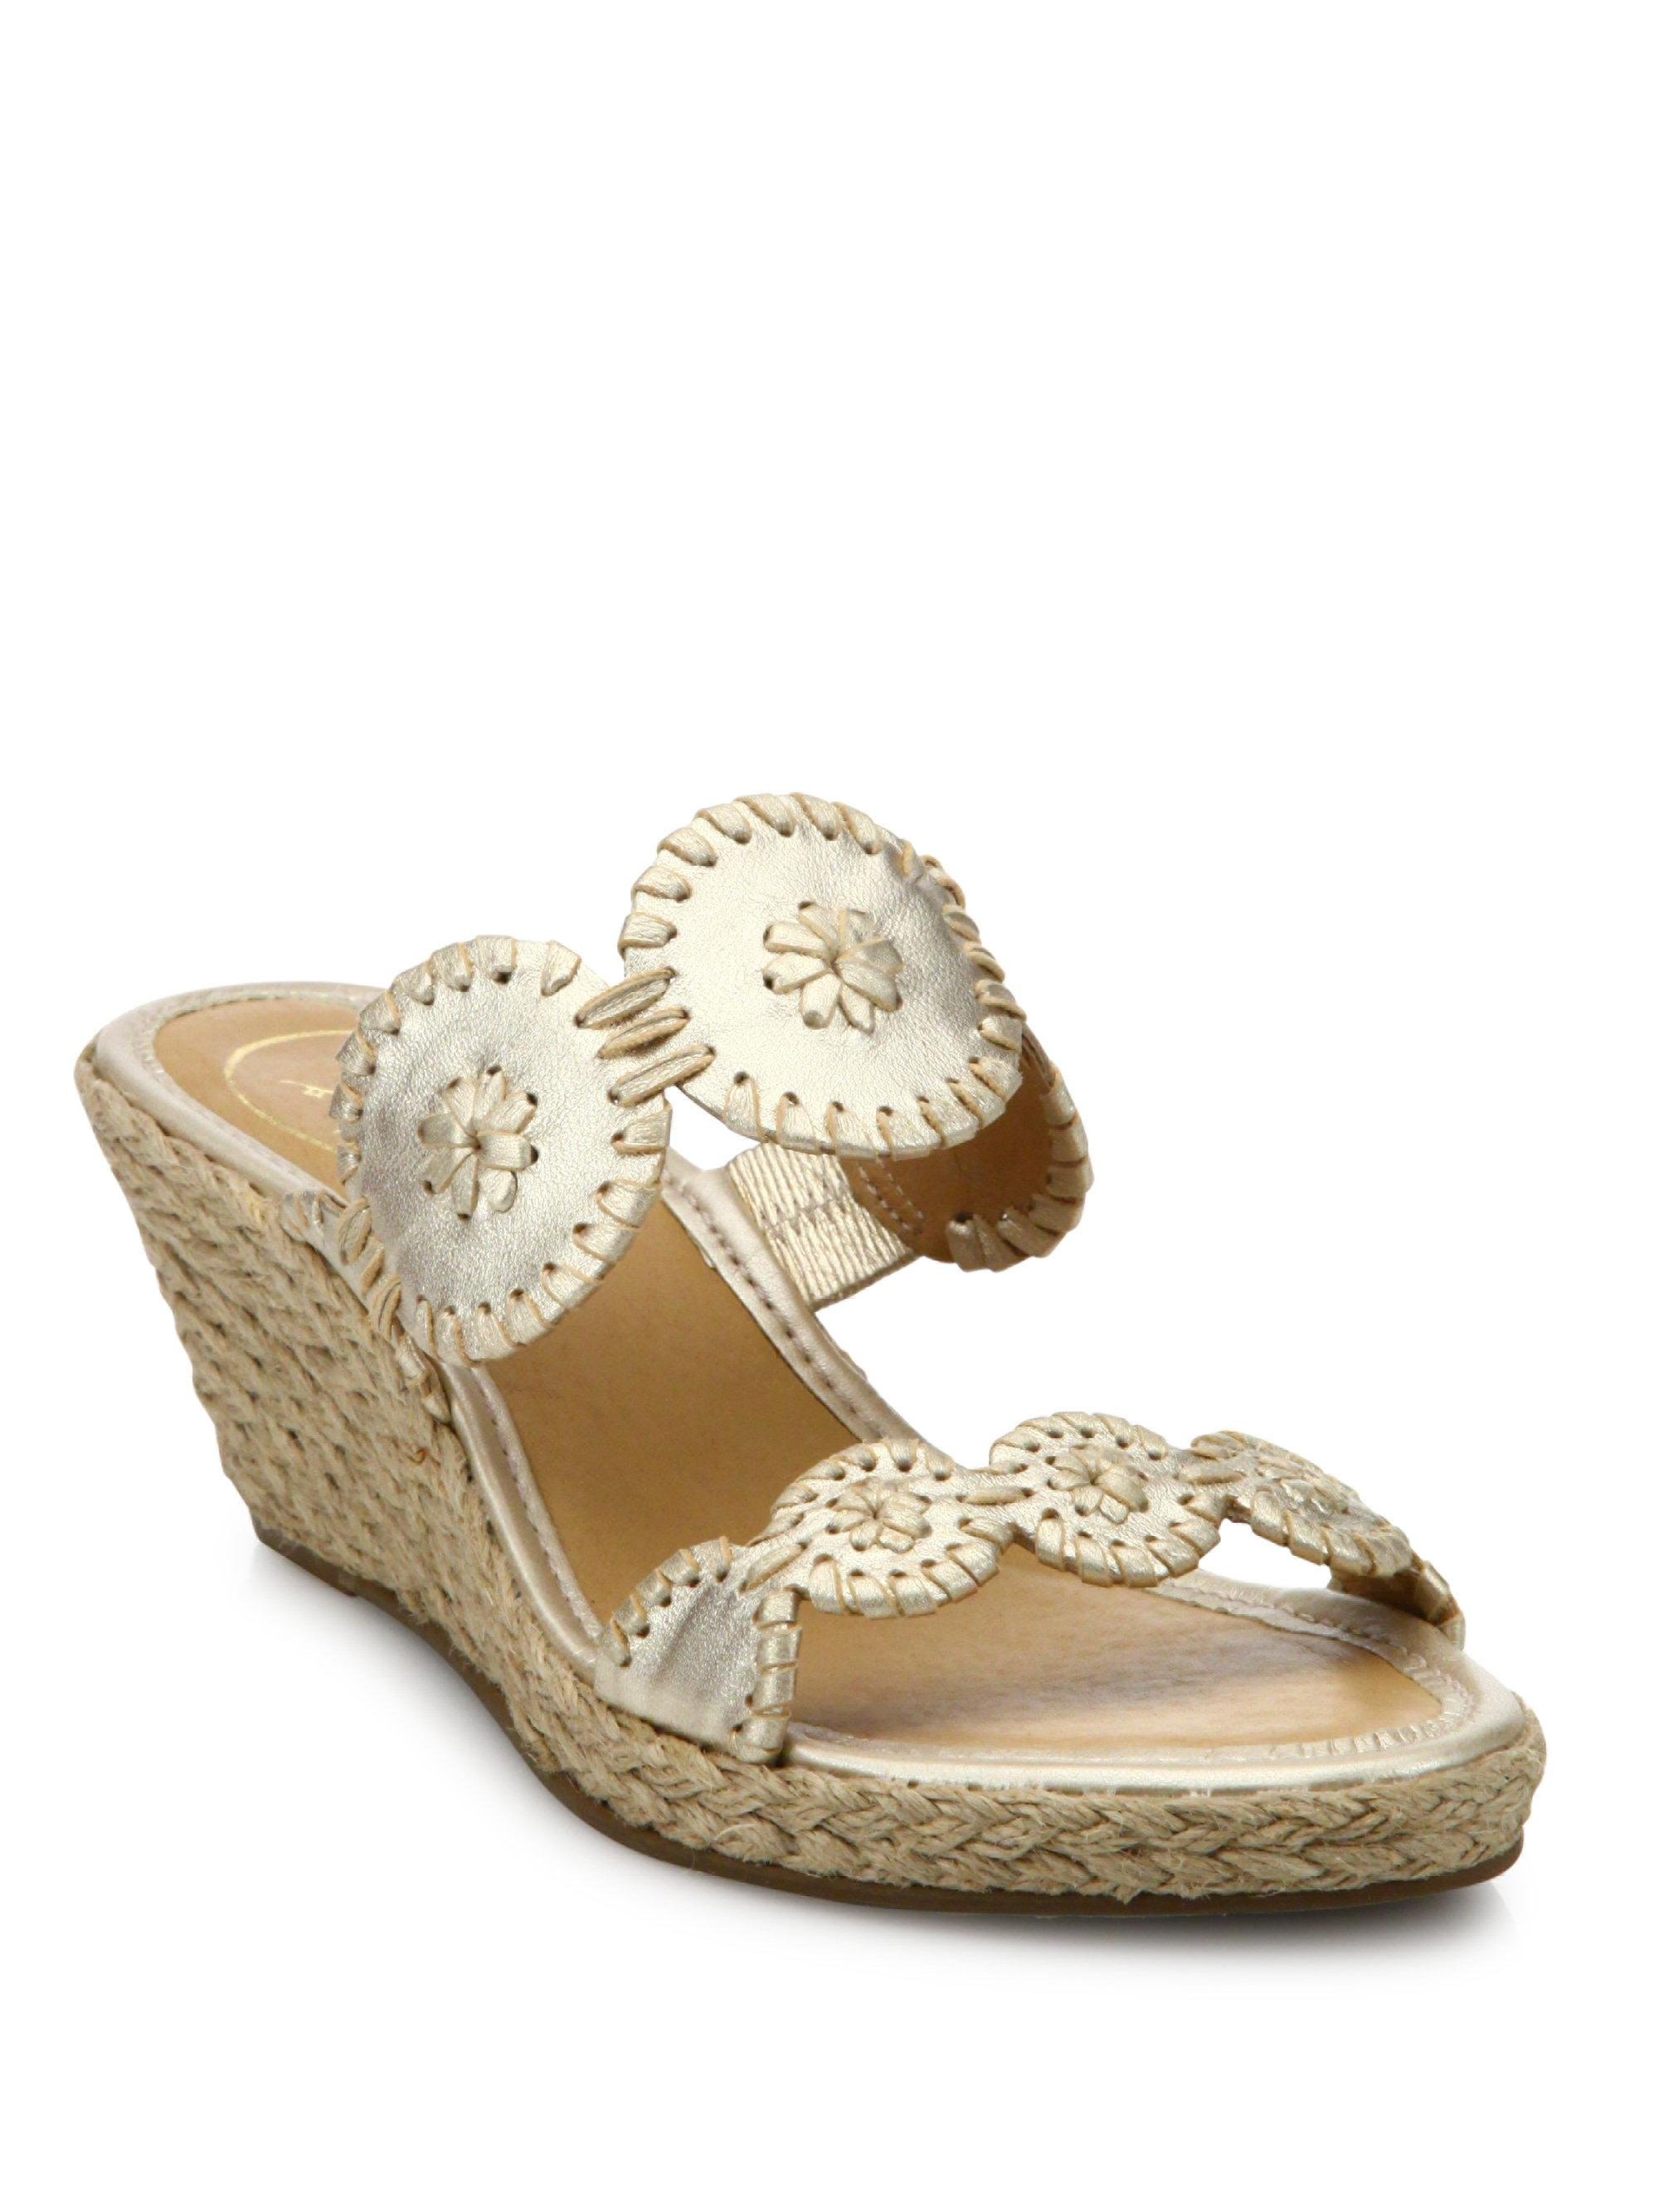 Jack Rogers Shelby Whipstitched Leather Sandals uDDjVLAWoq